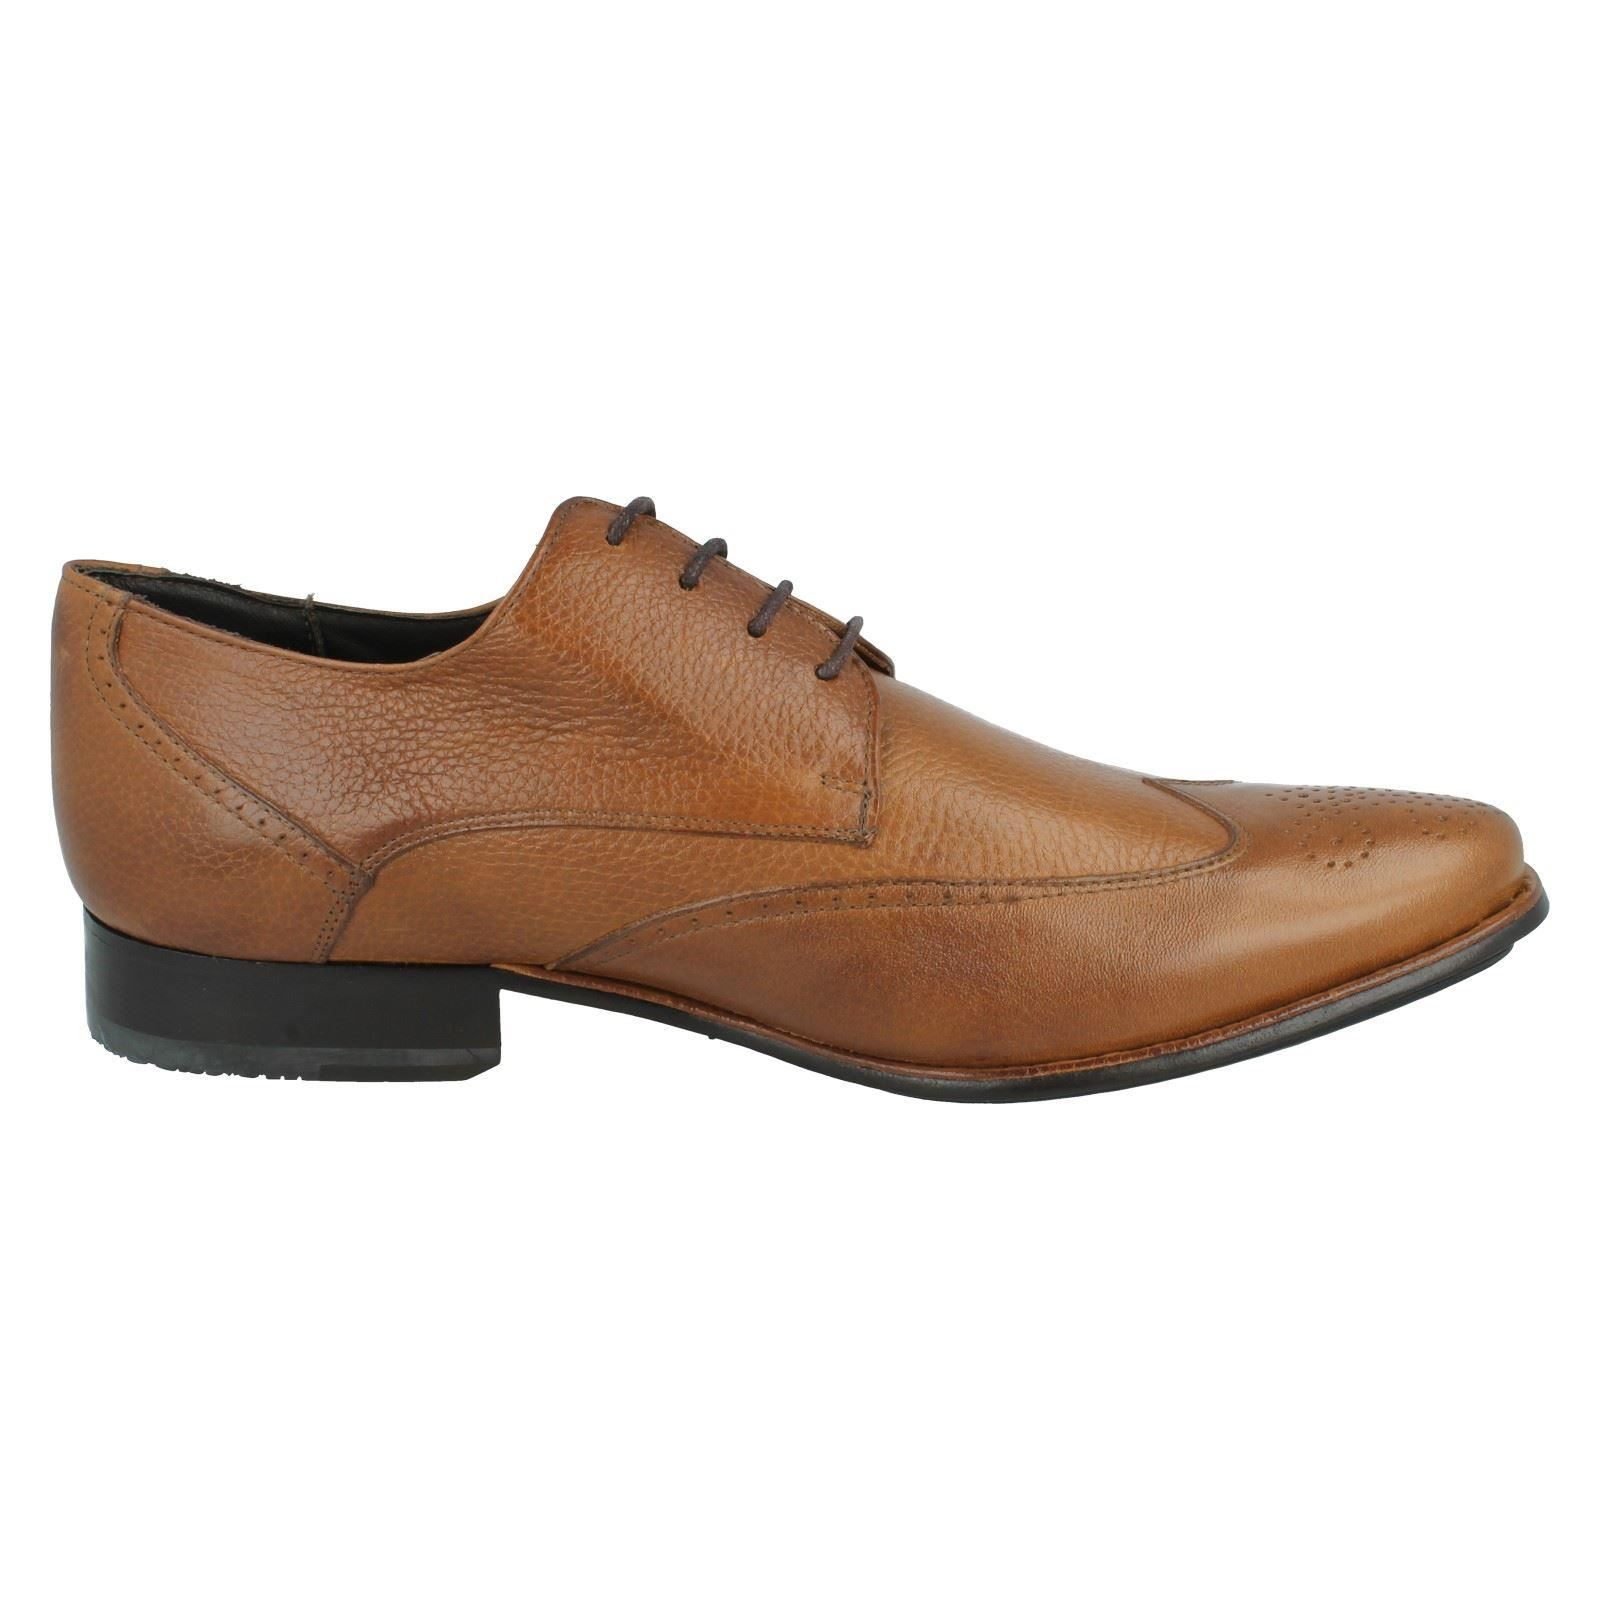 Mens Schuhes by Anatomic Prime 'Guara' The Style  K